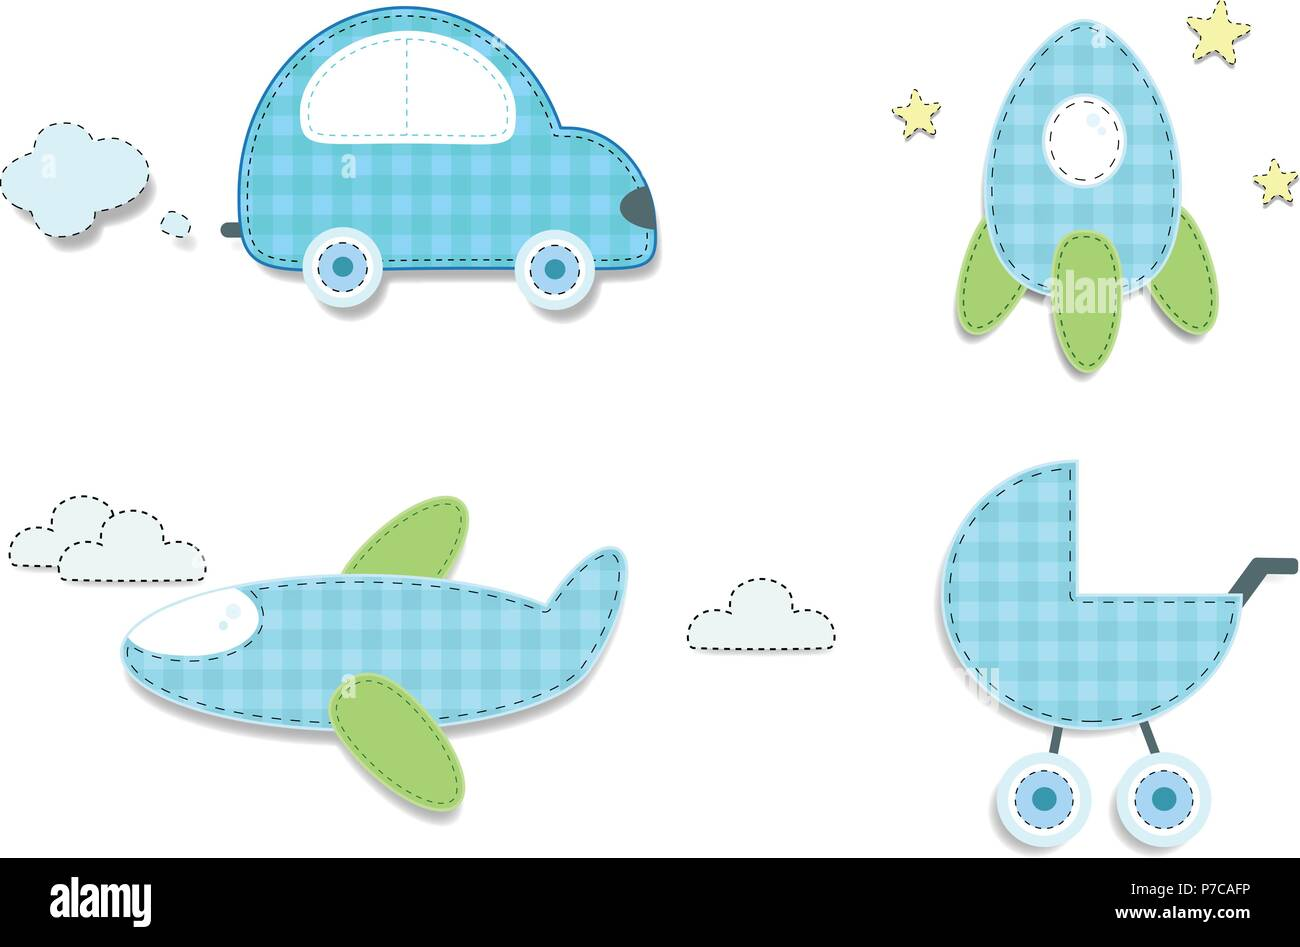 Vector set of cute baby boy elements for scrapbooking or baby shower vector set of cute baby boy elements for scrapbooking or baby shower greeting card and childs design cut out fabric or paper chequered blue stickers m4hsunfo